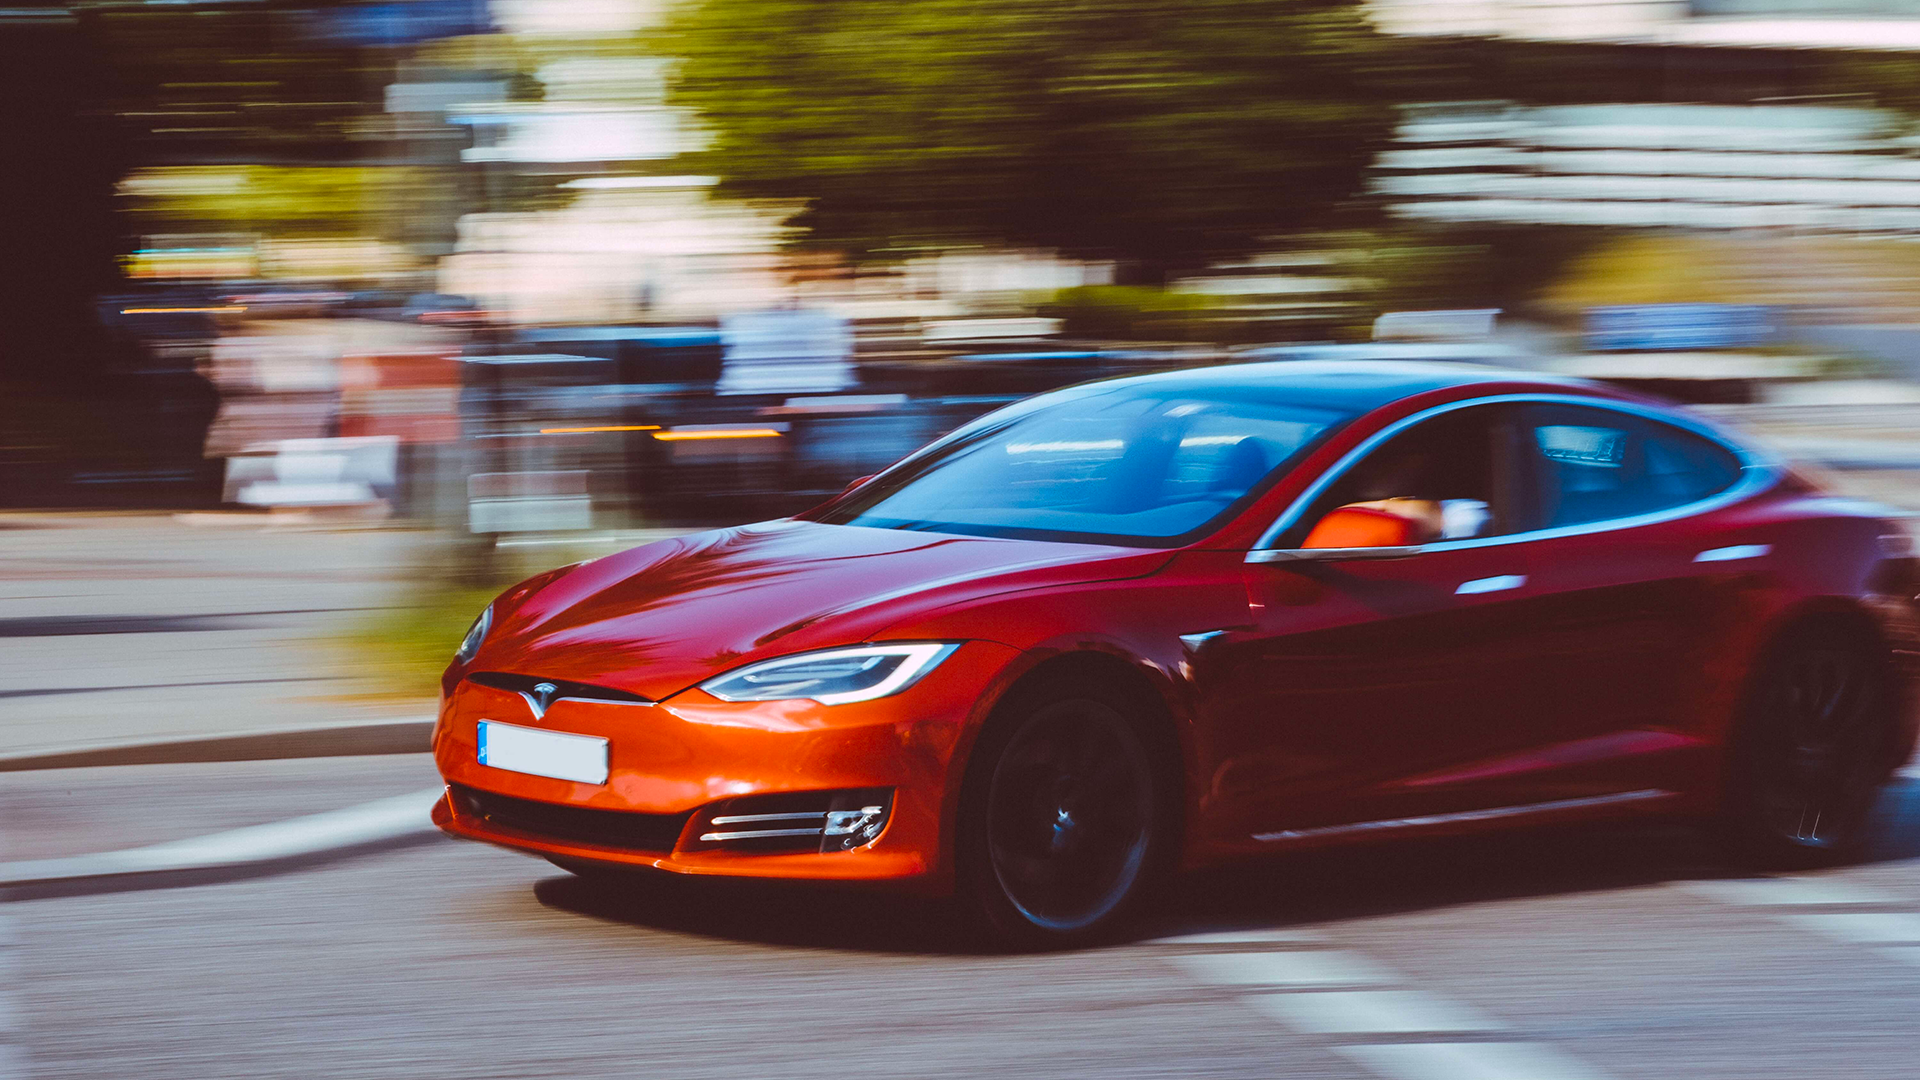 Elon Musk runs Tesla with all his money and reputation on the line. Can the same be said for the CEOs of Ford and GM?